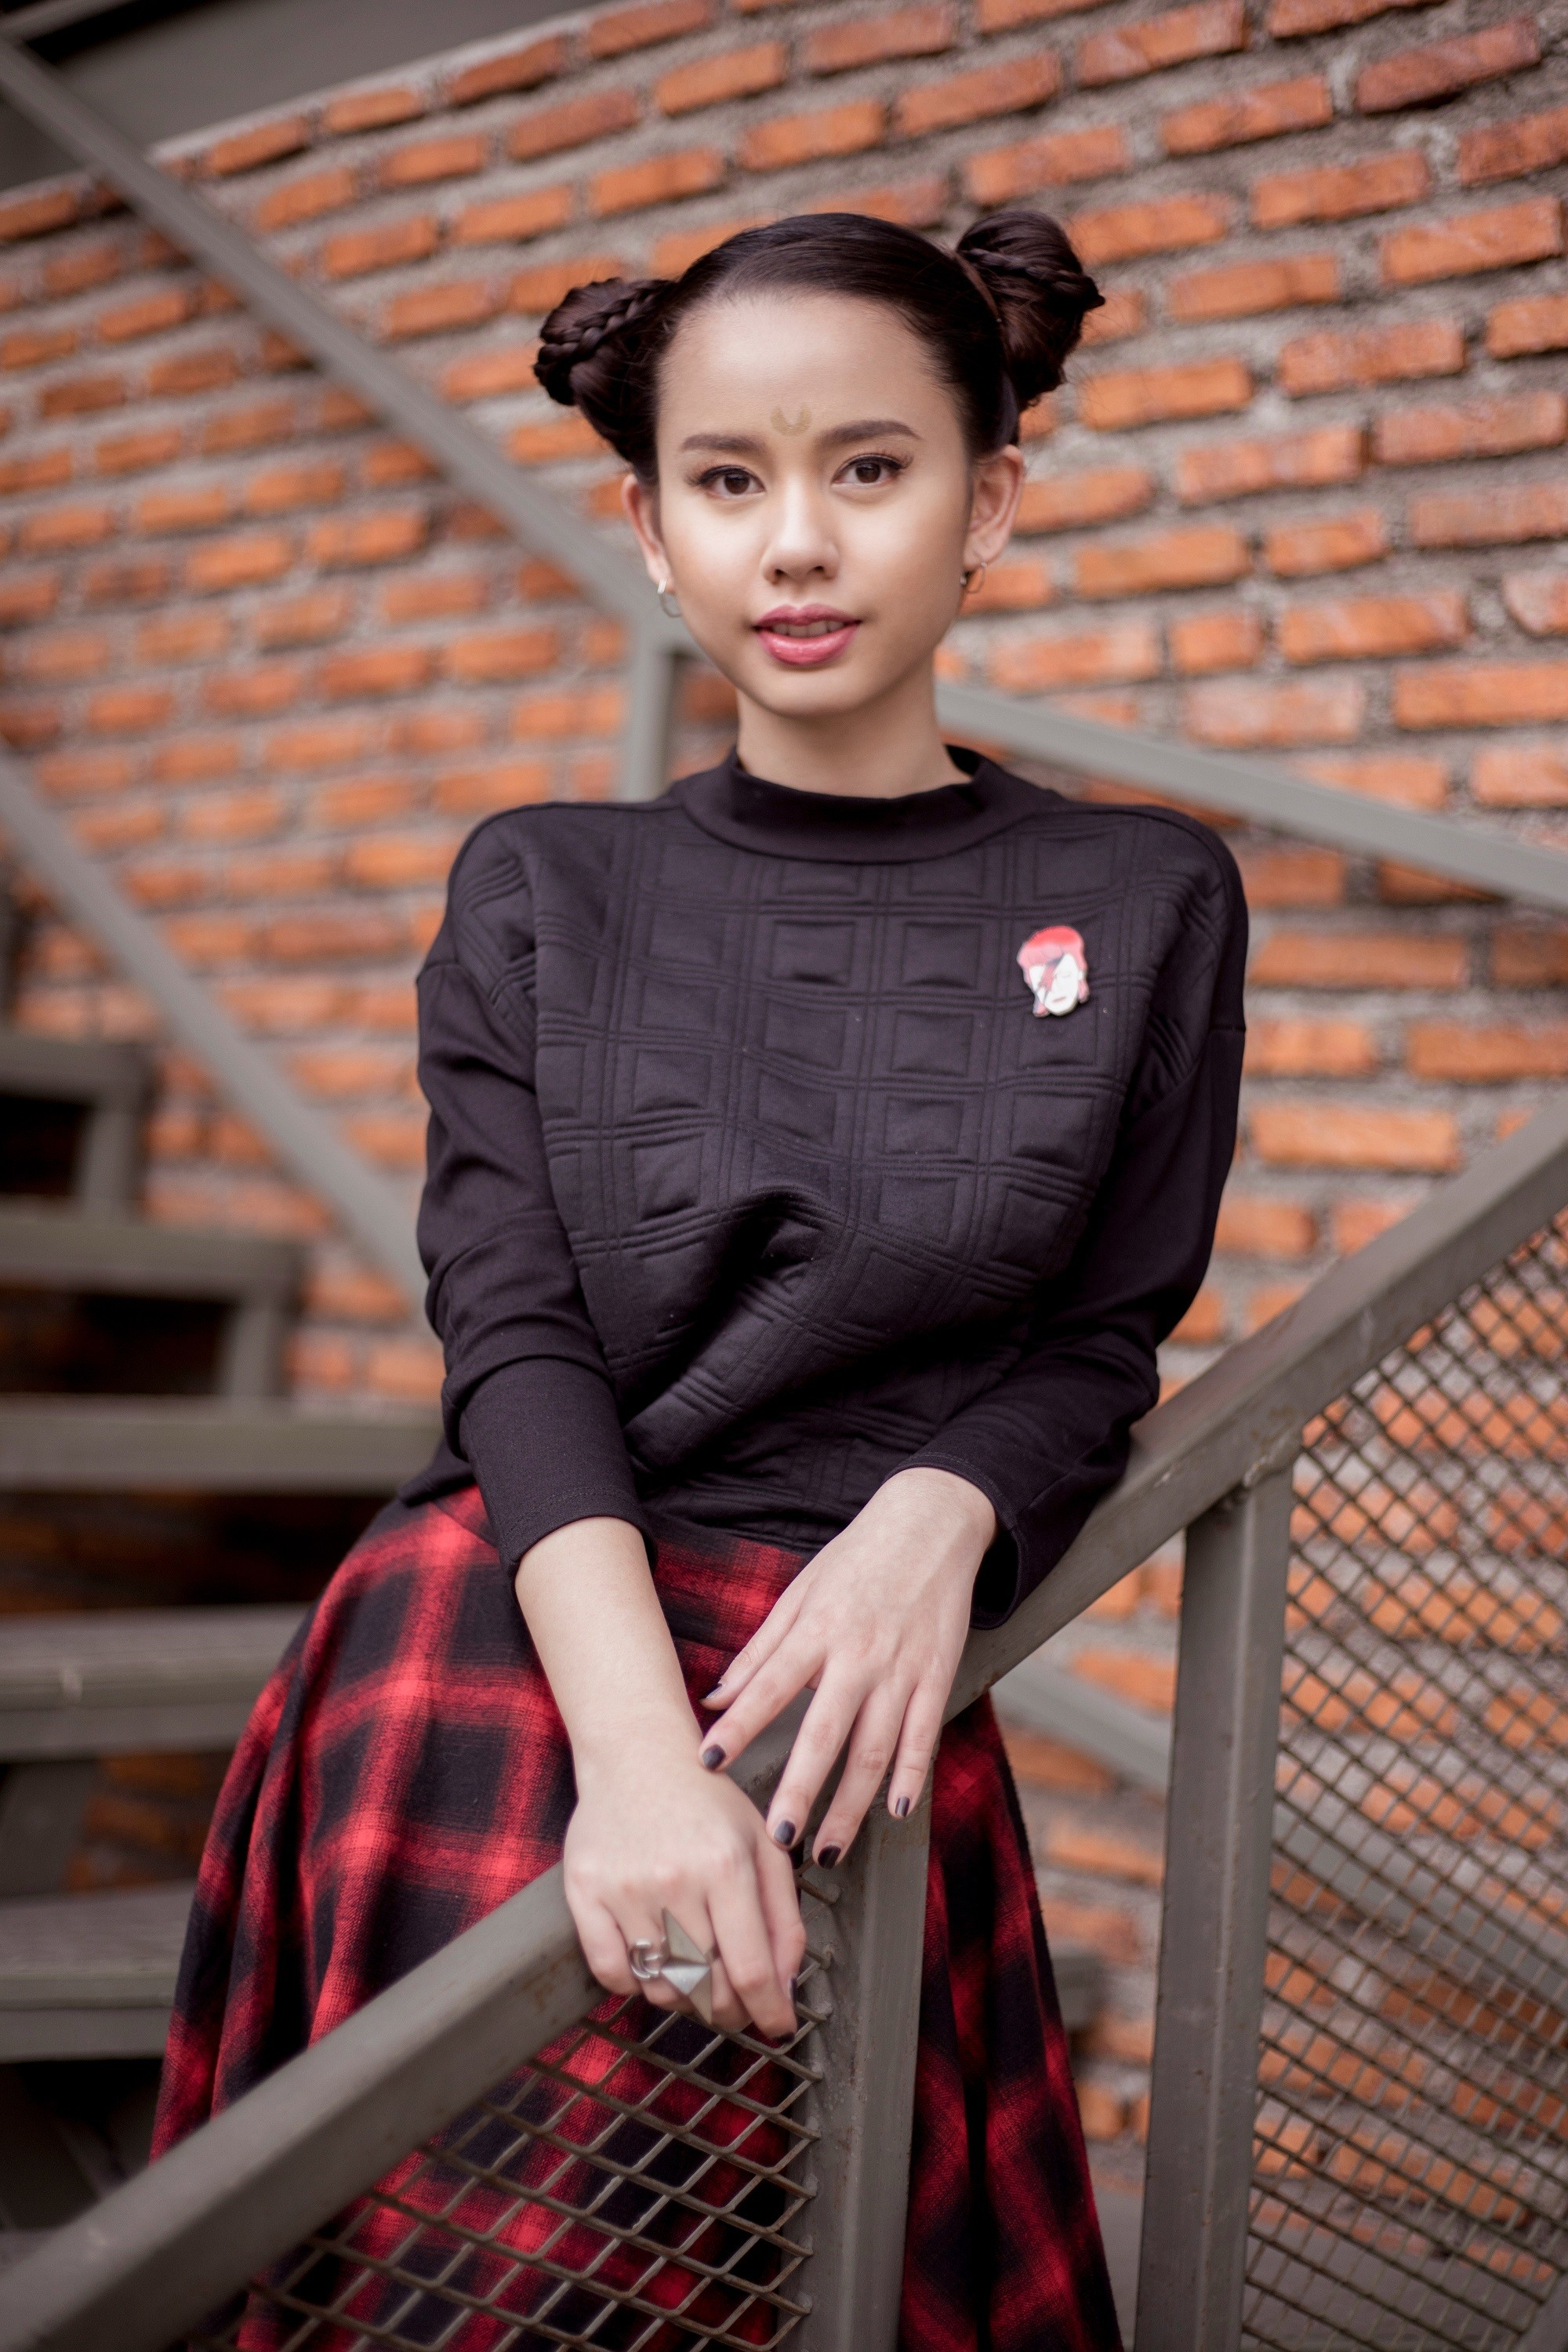 Halloween glam hair: Asian girl with black hair in double buns wearing black jacket and plaid skirt against a brick wall in outdoor location